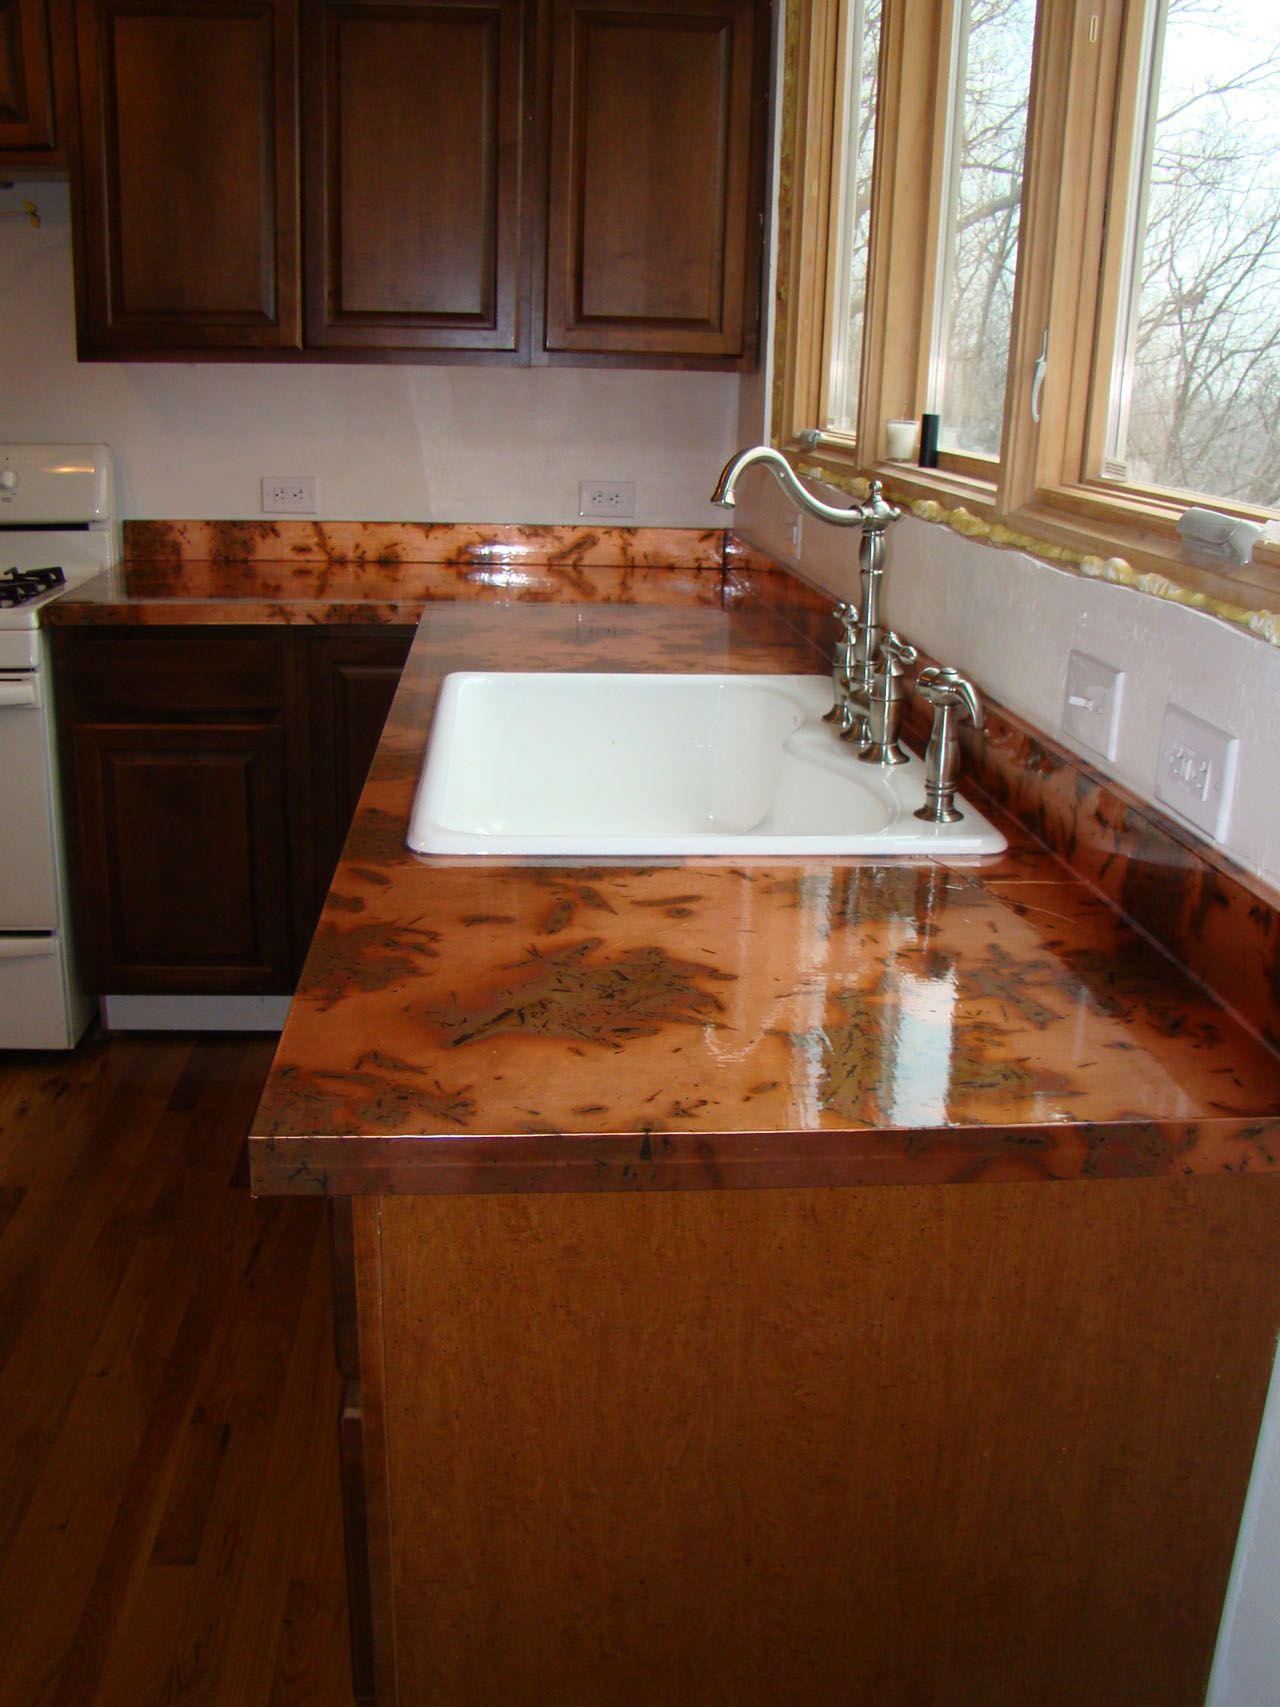 Bamboo Backsplash The Kitchen And Diy Copper Countertops Diy Craft Ideas